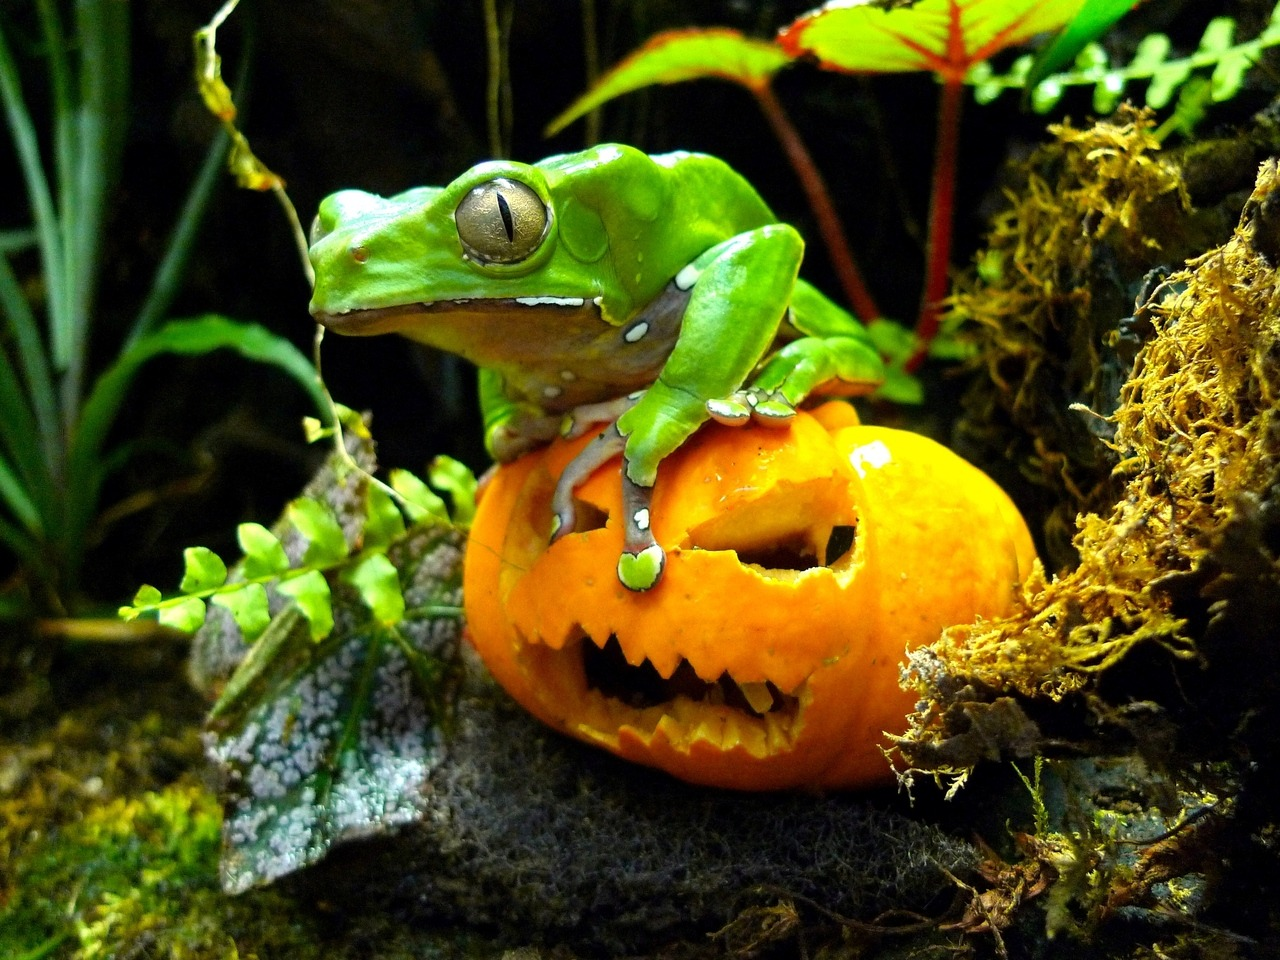 Giant waxy monkey tree frog on a miniature pumpkin at ZSL London Zoo  (c.) Grant Kother